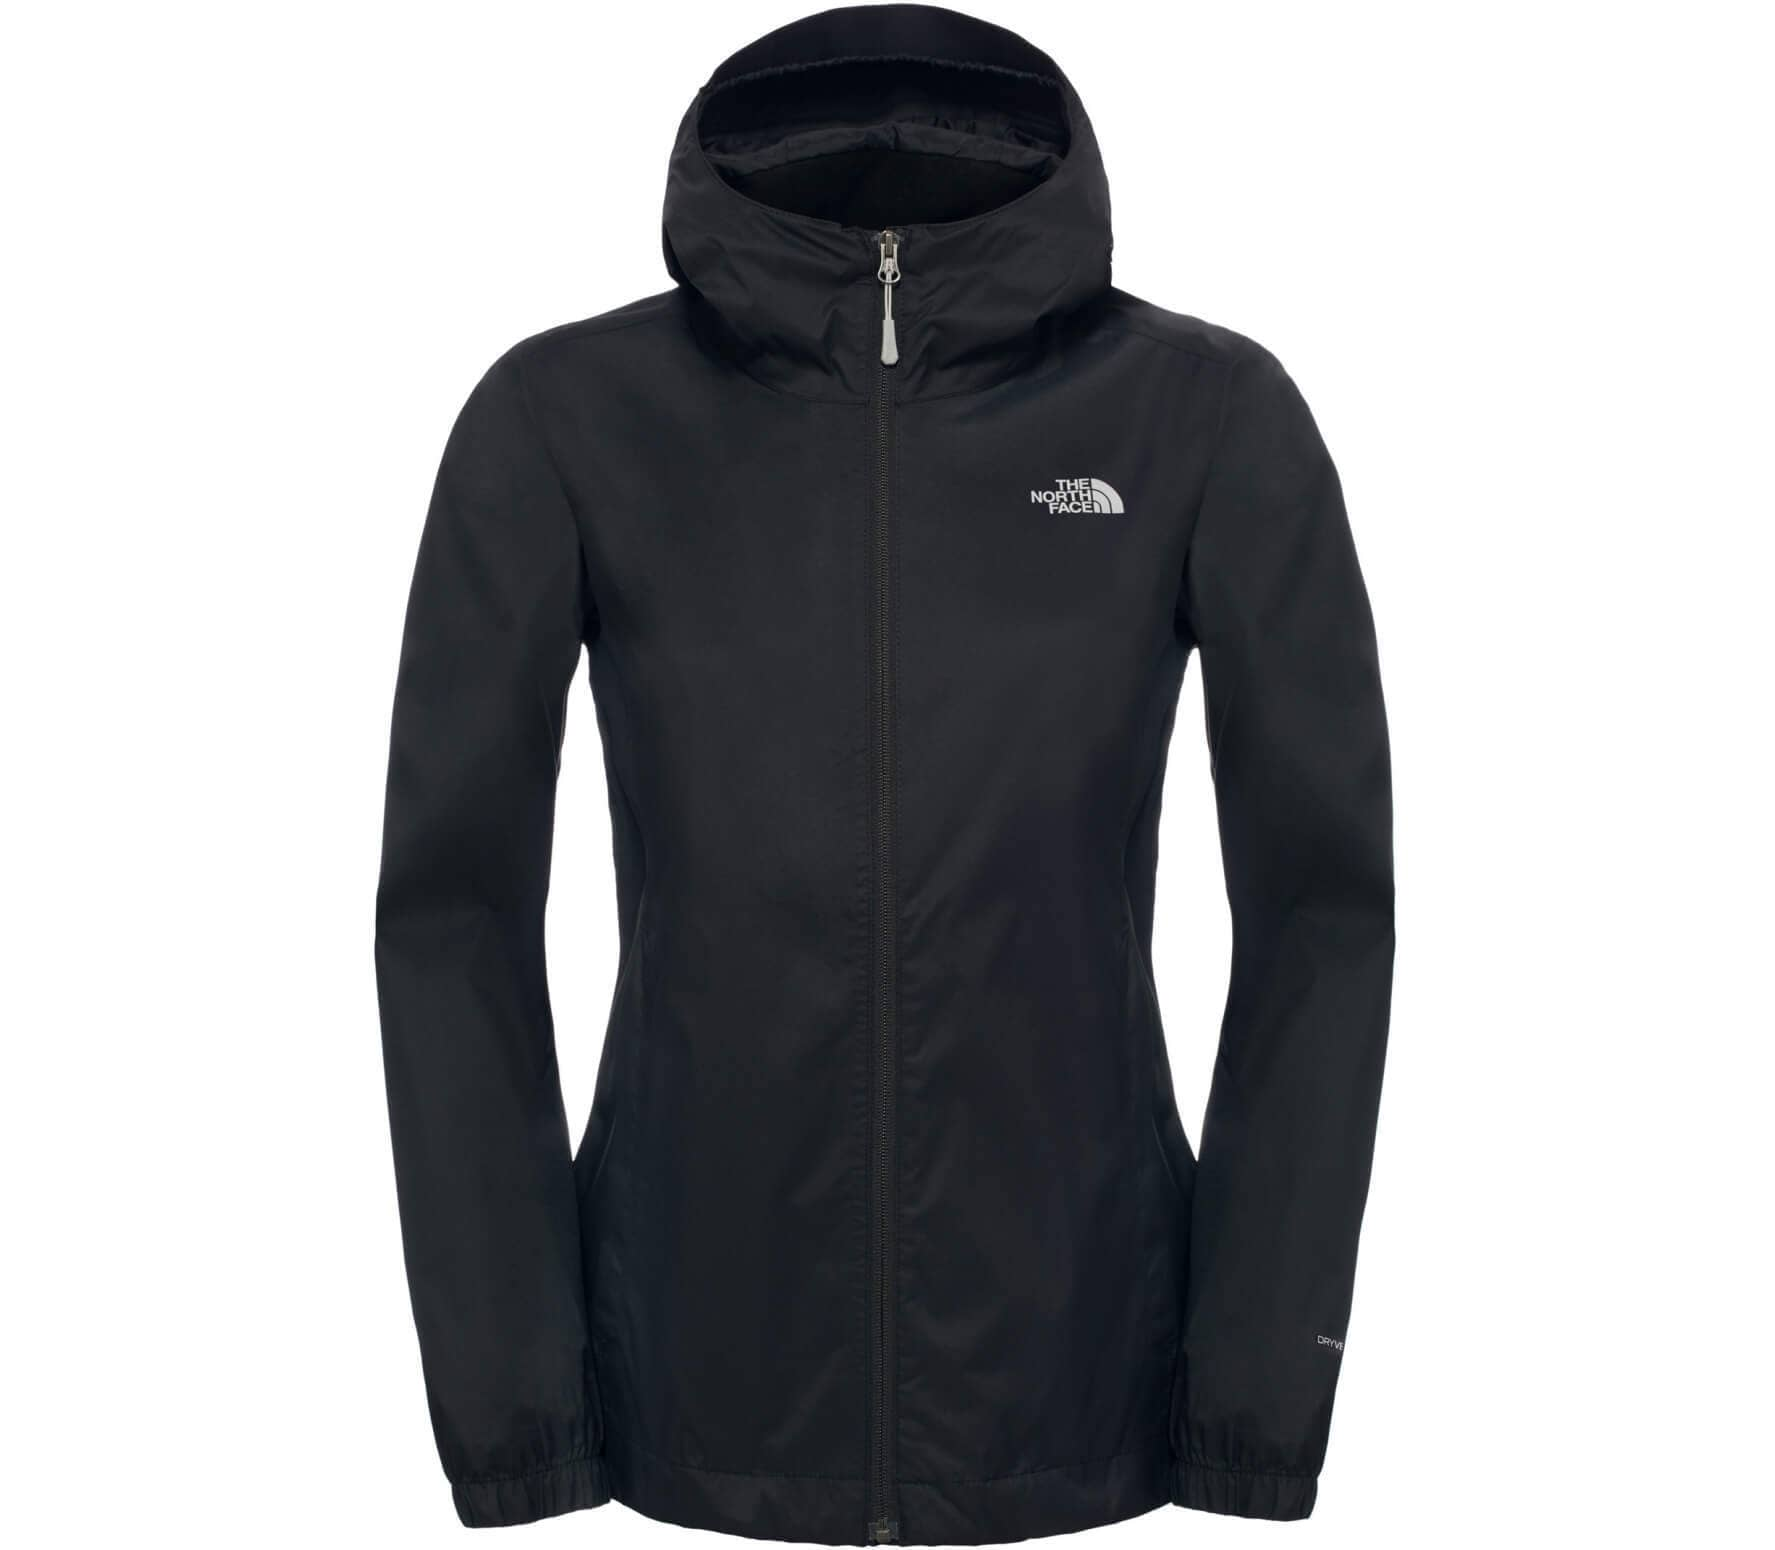 adf763a0ebfe8d The North Face - Quest Damen Regenjacke (schwarz) im Online Shop von ...